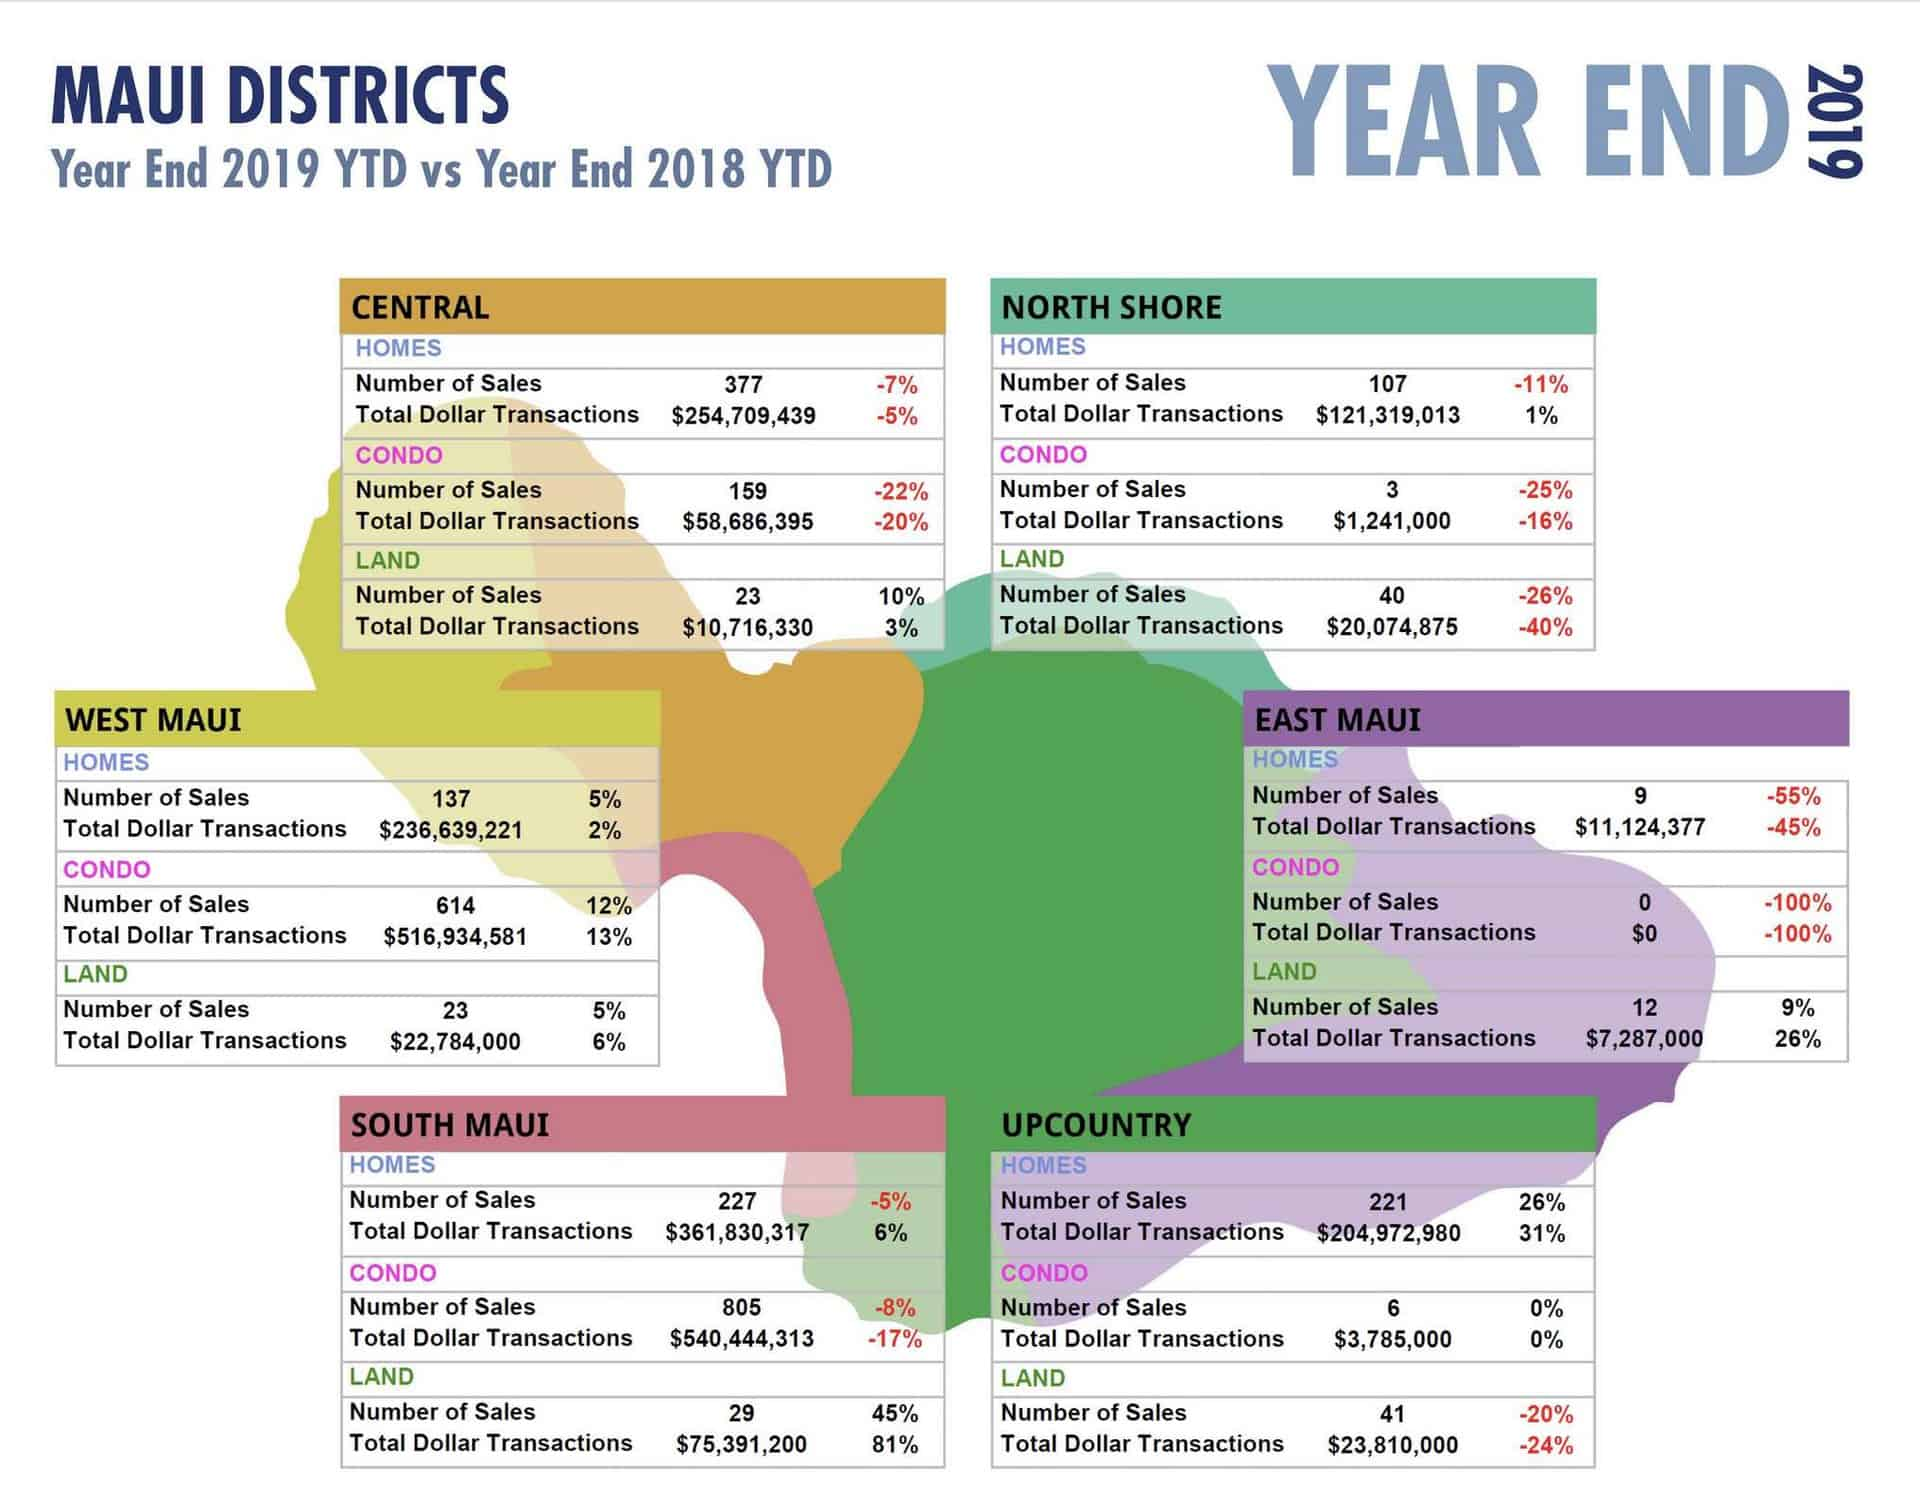 Maui Hawaii 2019 year end stats by districts